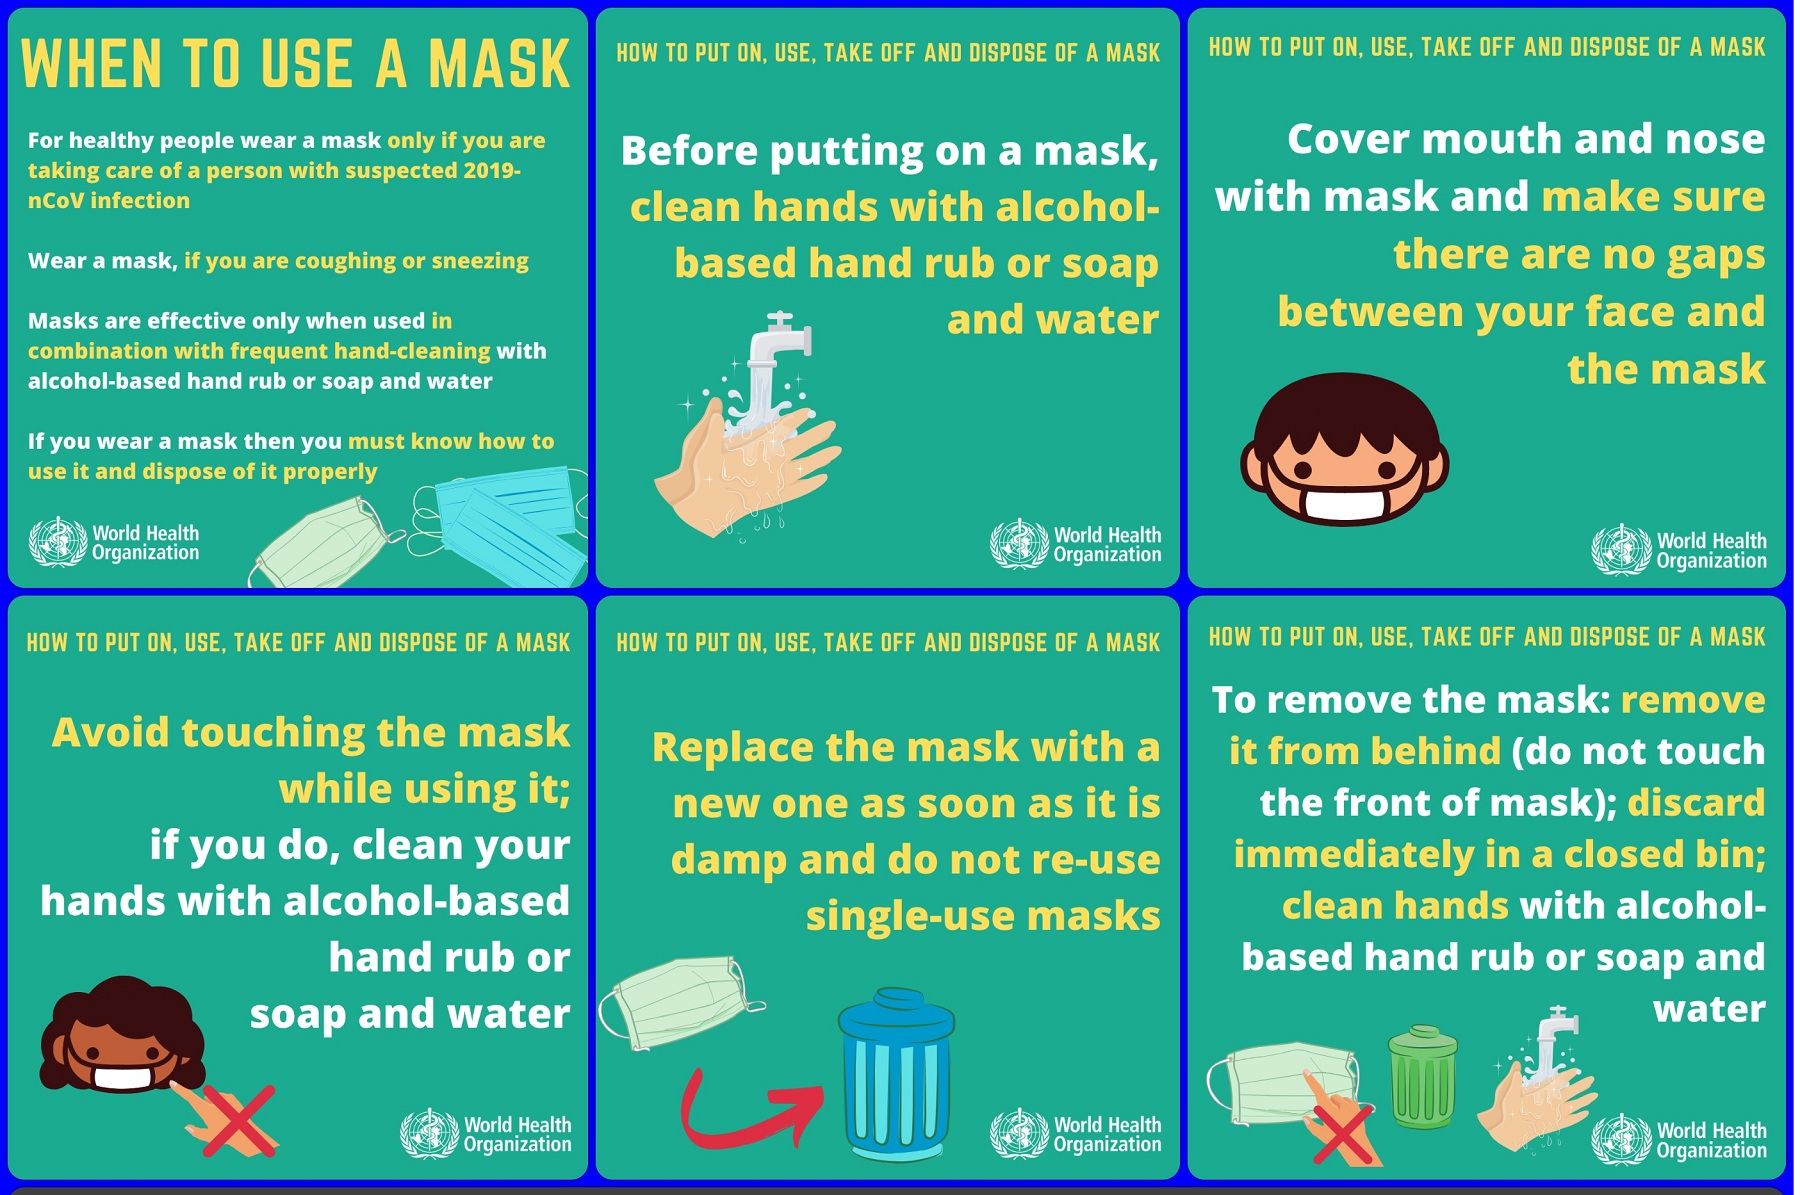 COVID-19: WHO's advice for public - When and how to use masks